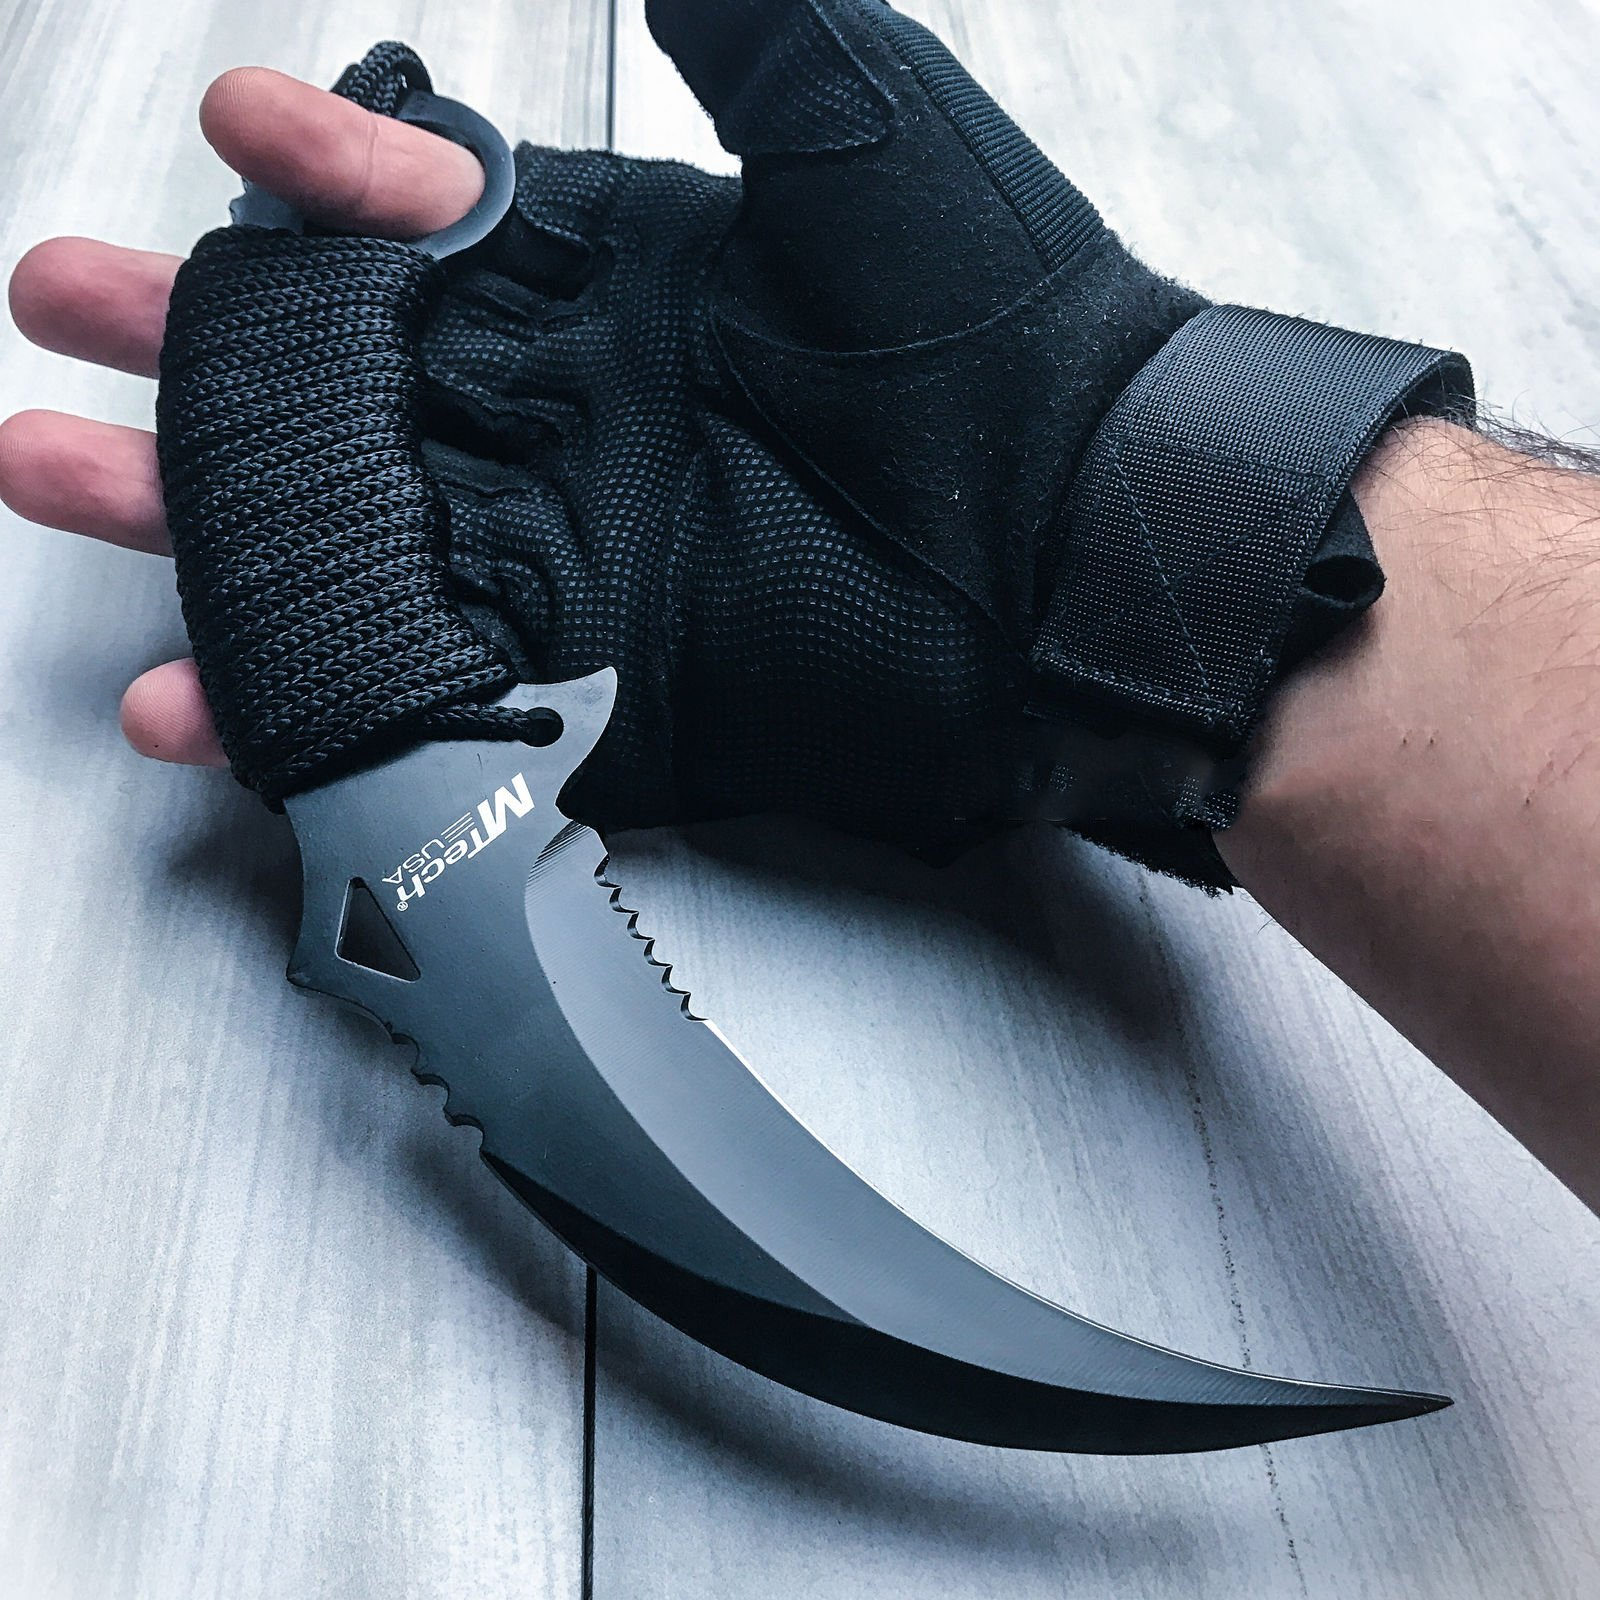 10'' TACTICAL COMBAT KARAMBIT KNIFE BestSeller989 Survival Hunting BOWIE Fixed Blade